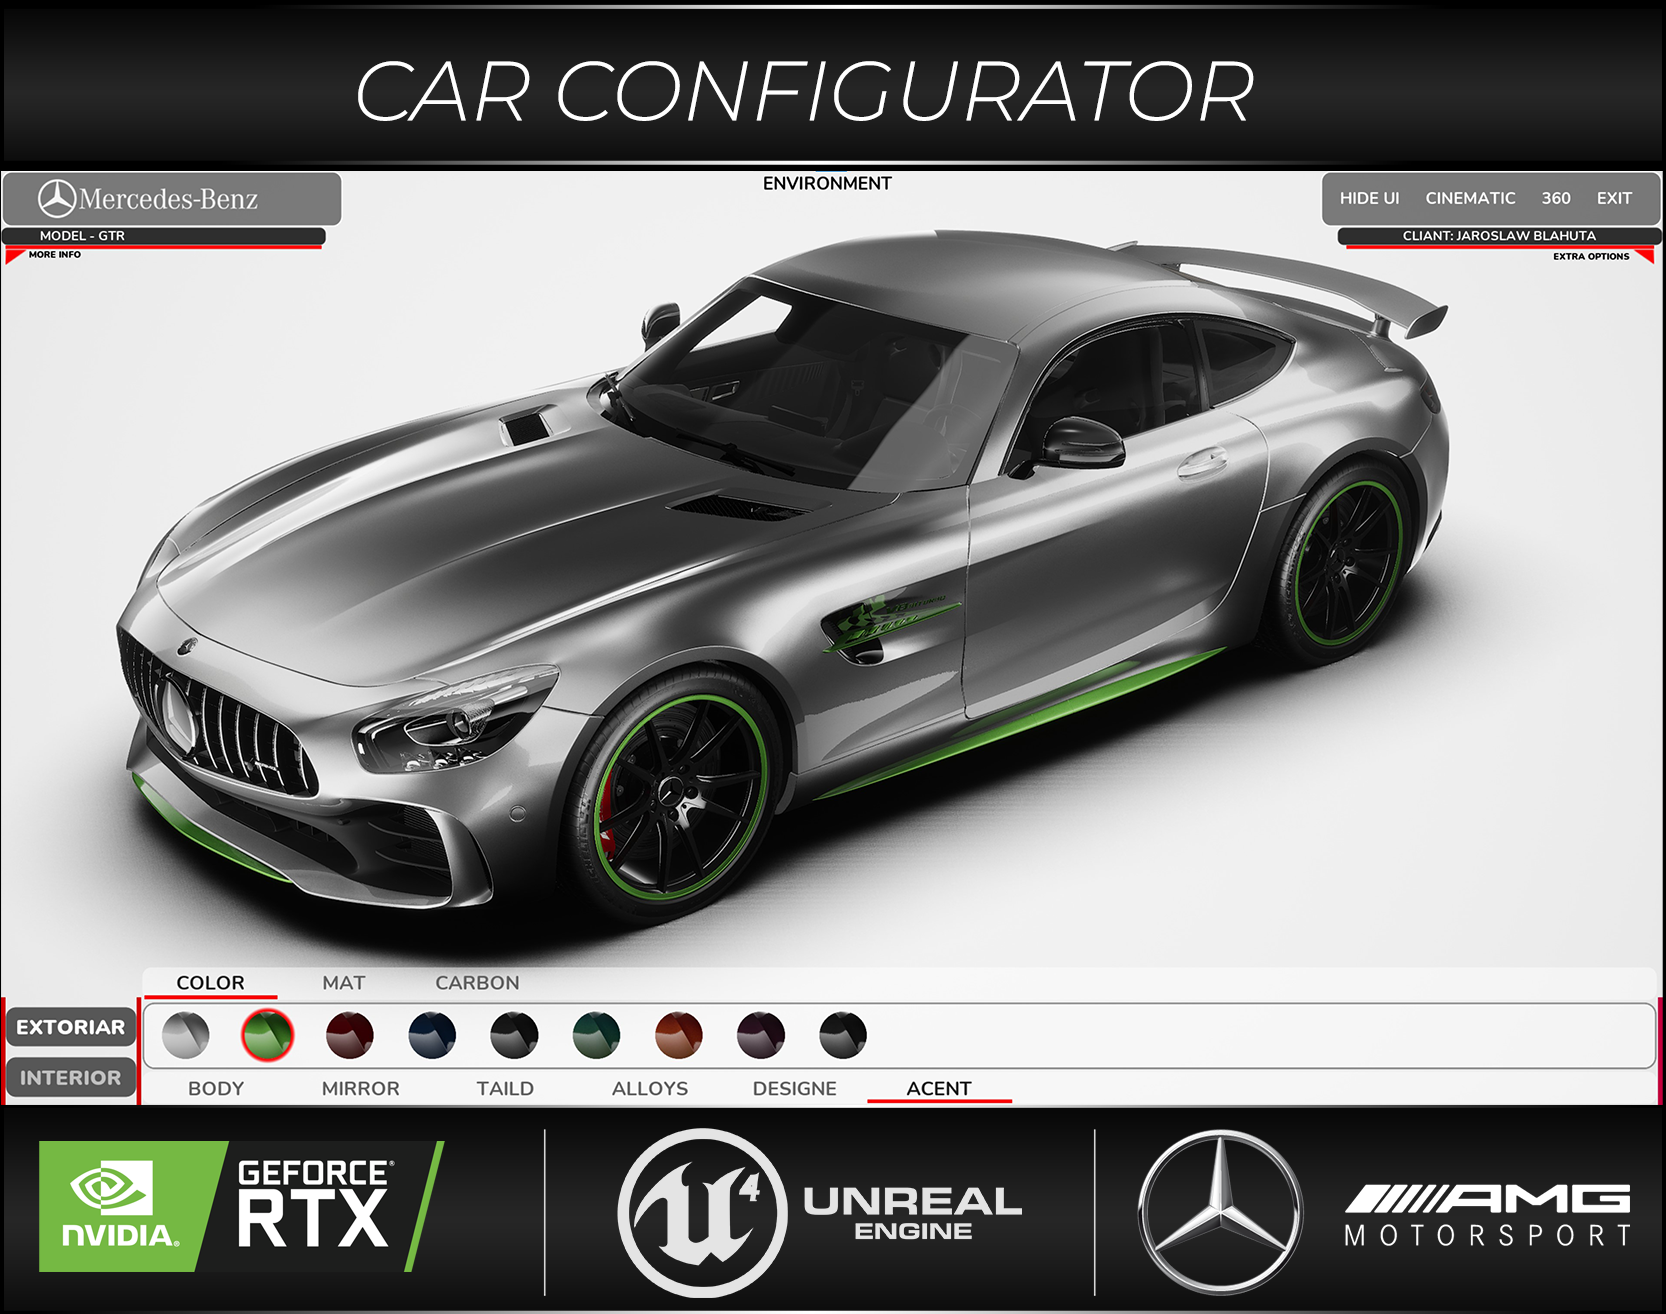 Car Configurator Projects Photos Videos Logos Illustrations And Branding On Behance